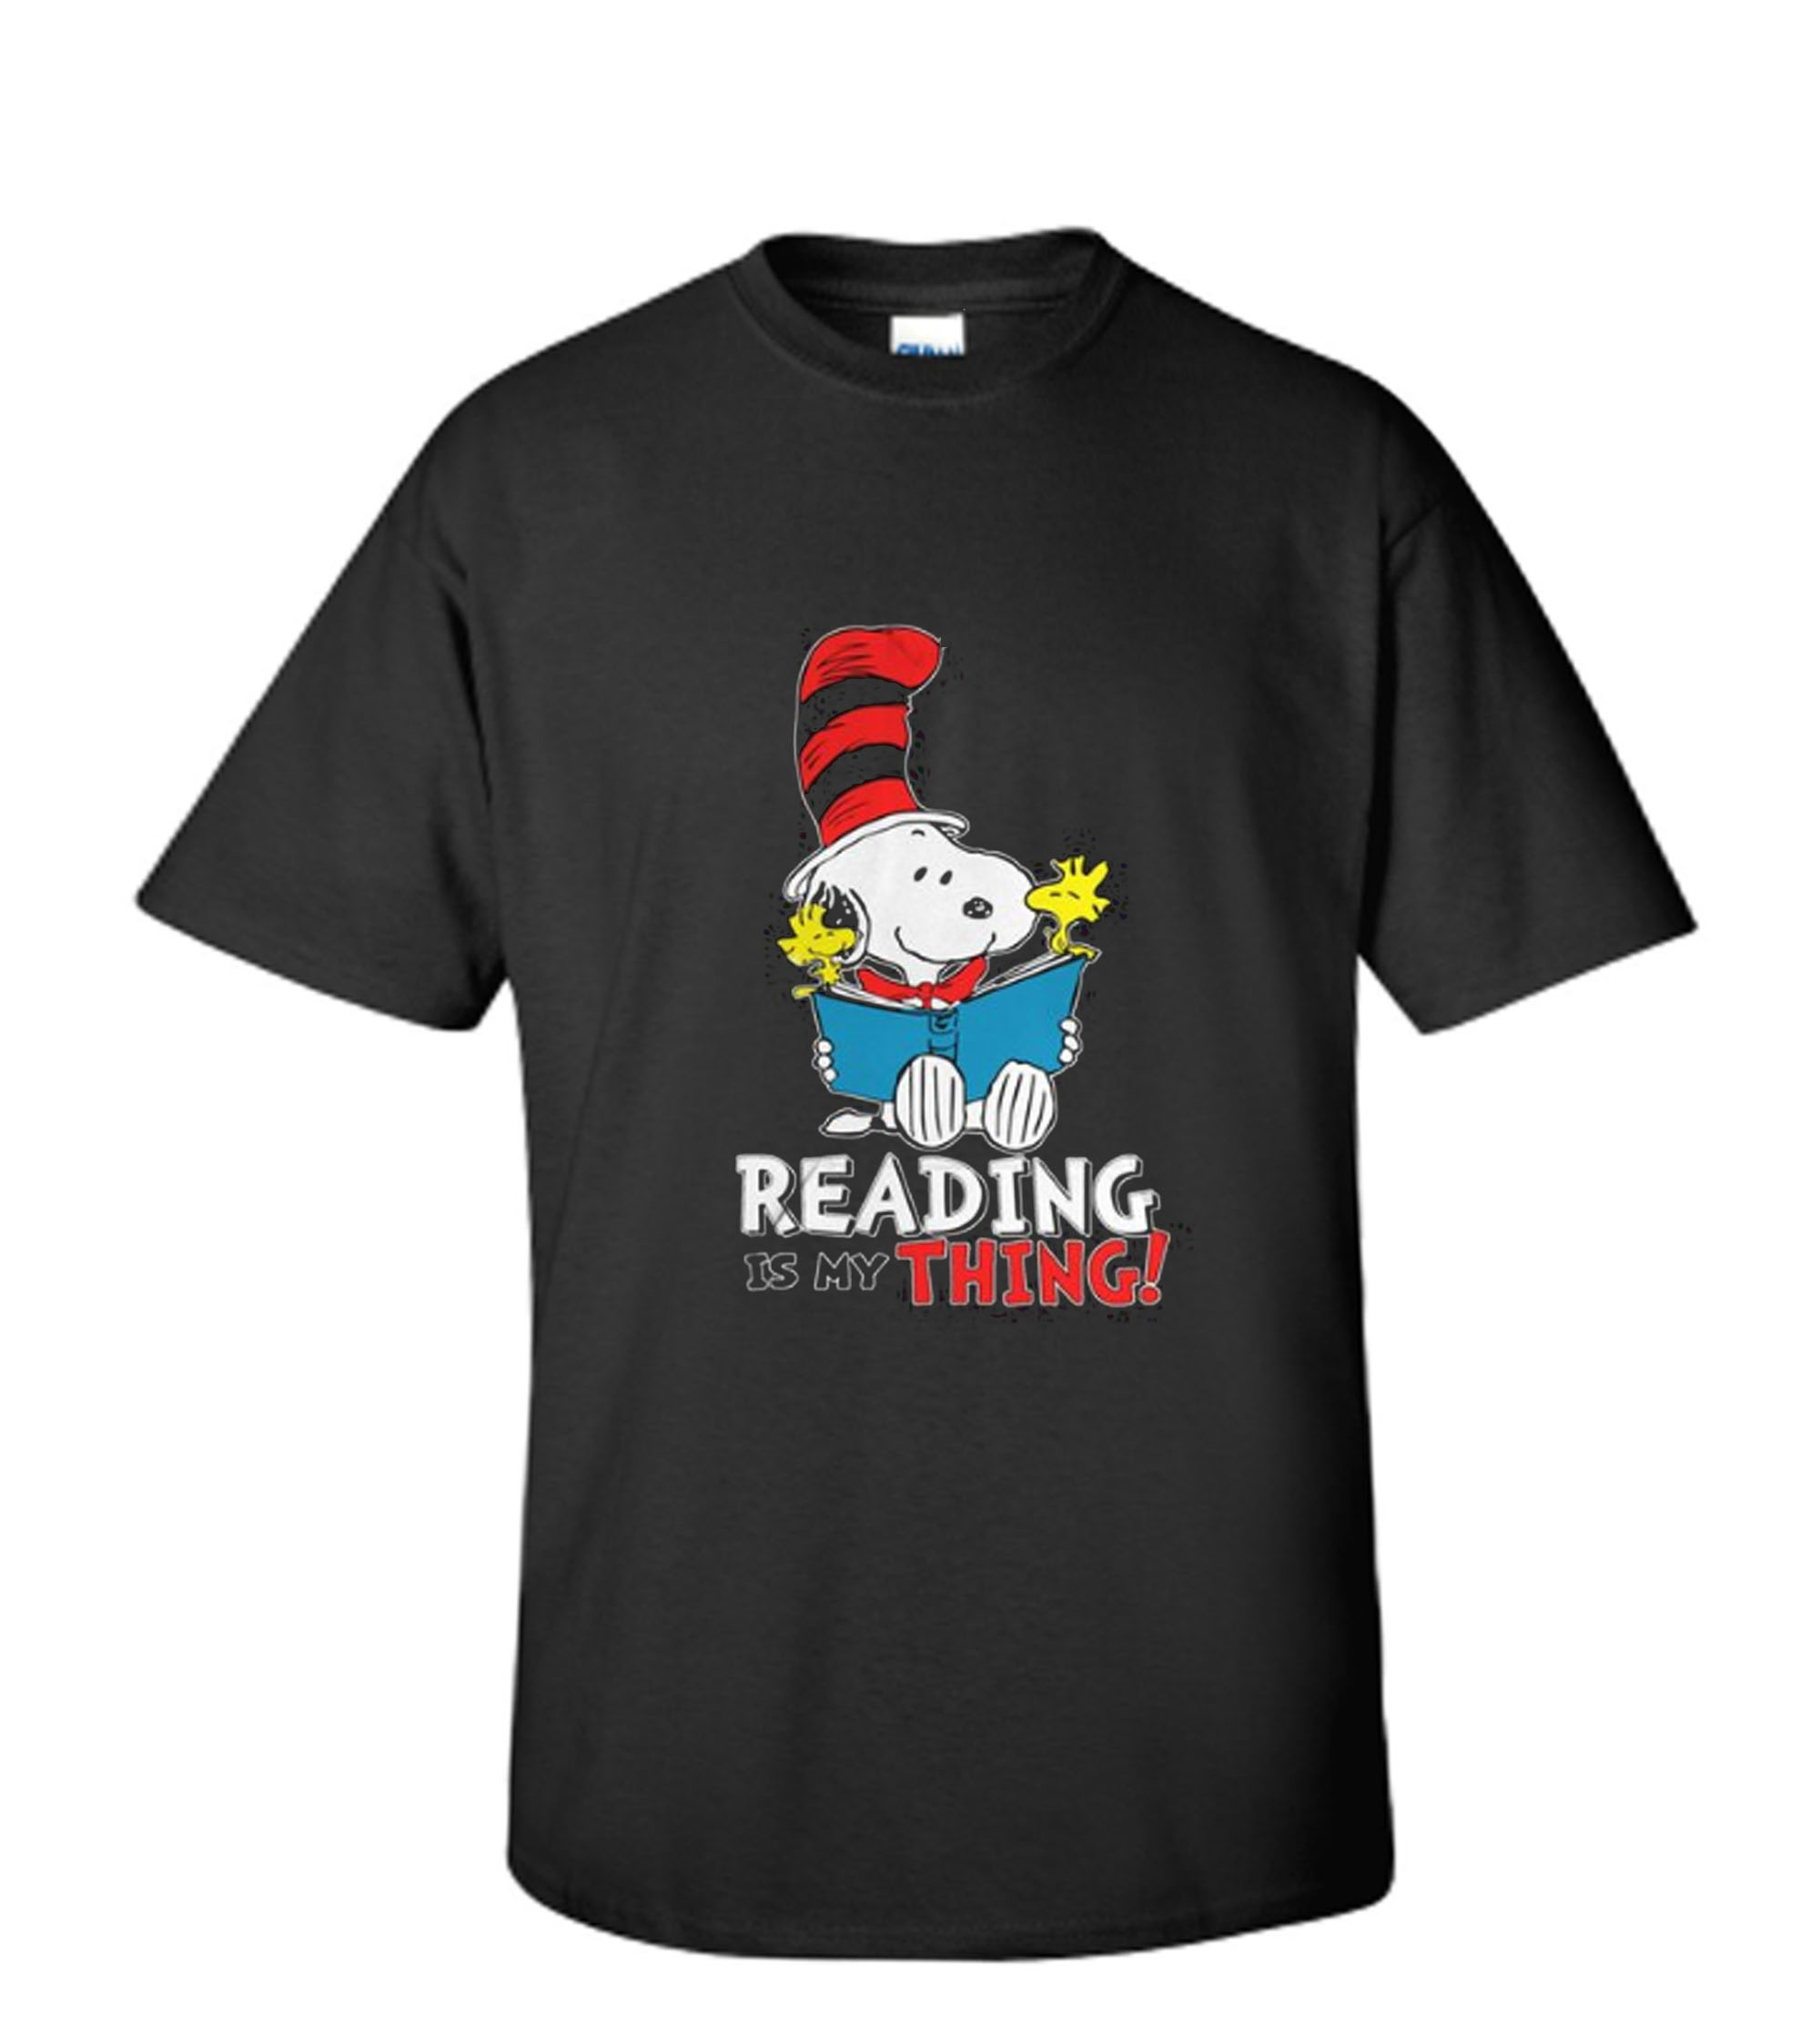 Reading Is My Thing - Snoopy T Shirt